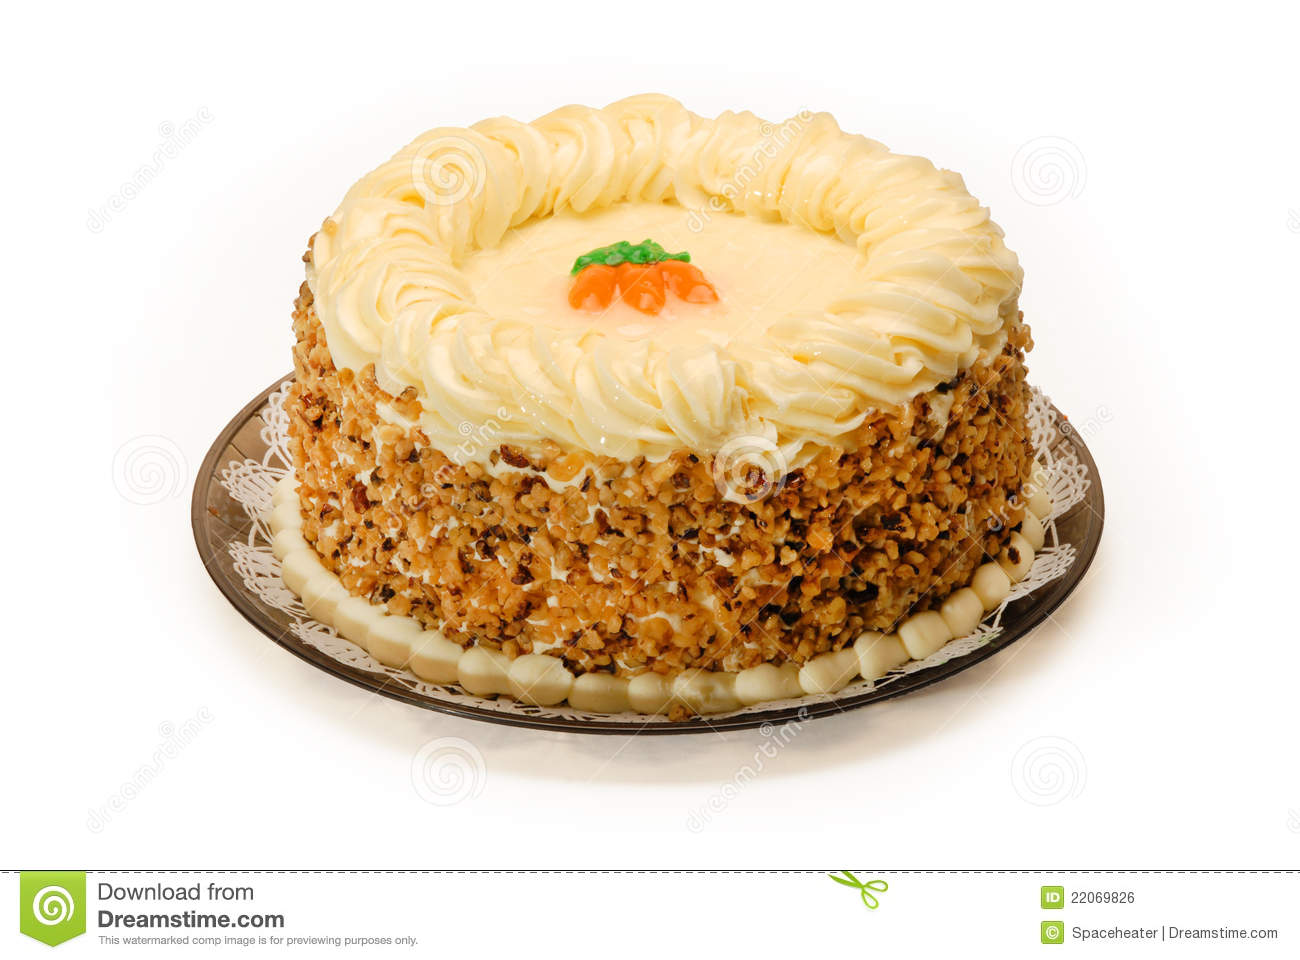 Calories In A Piece Of Carrot Cake With Icing